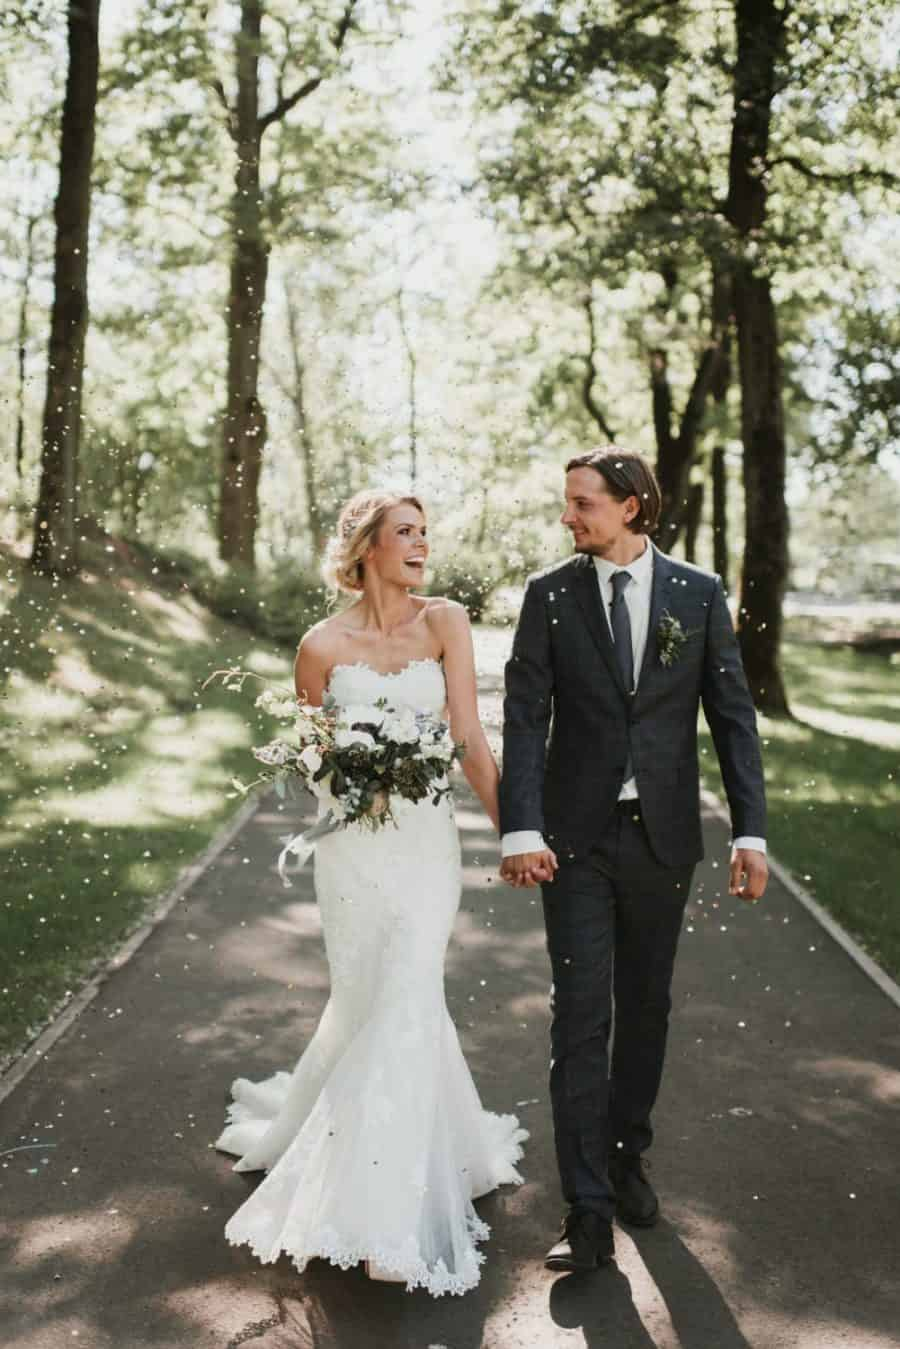 gray wedding suit with gray tie